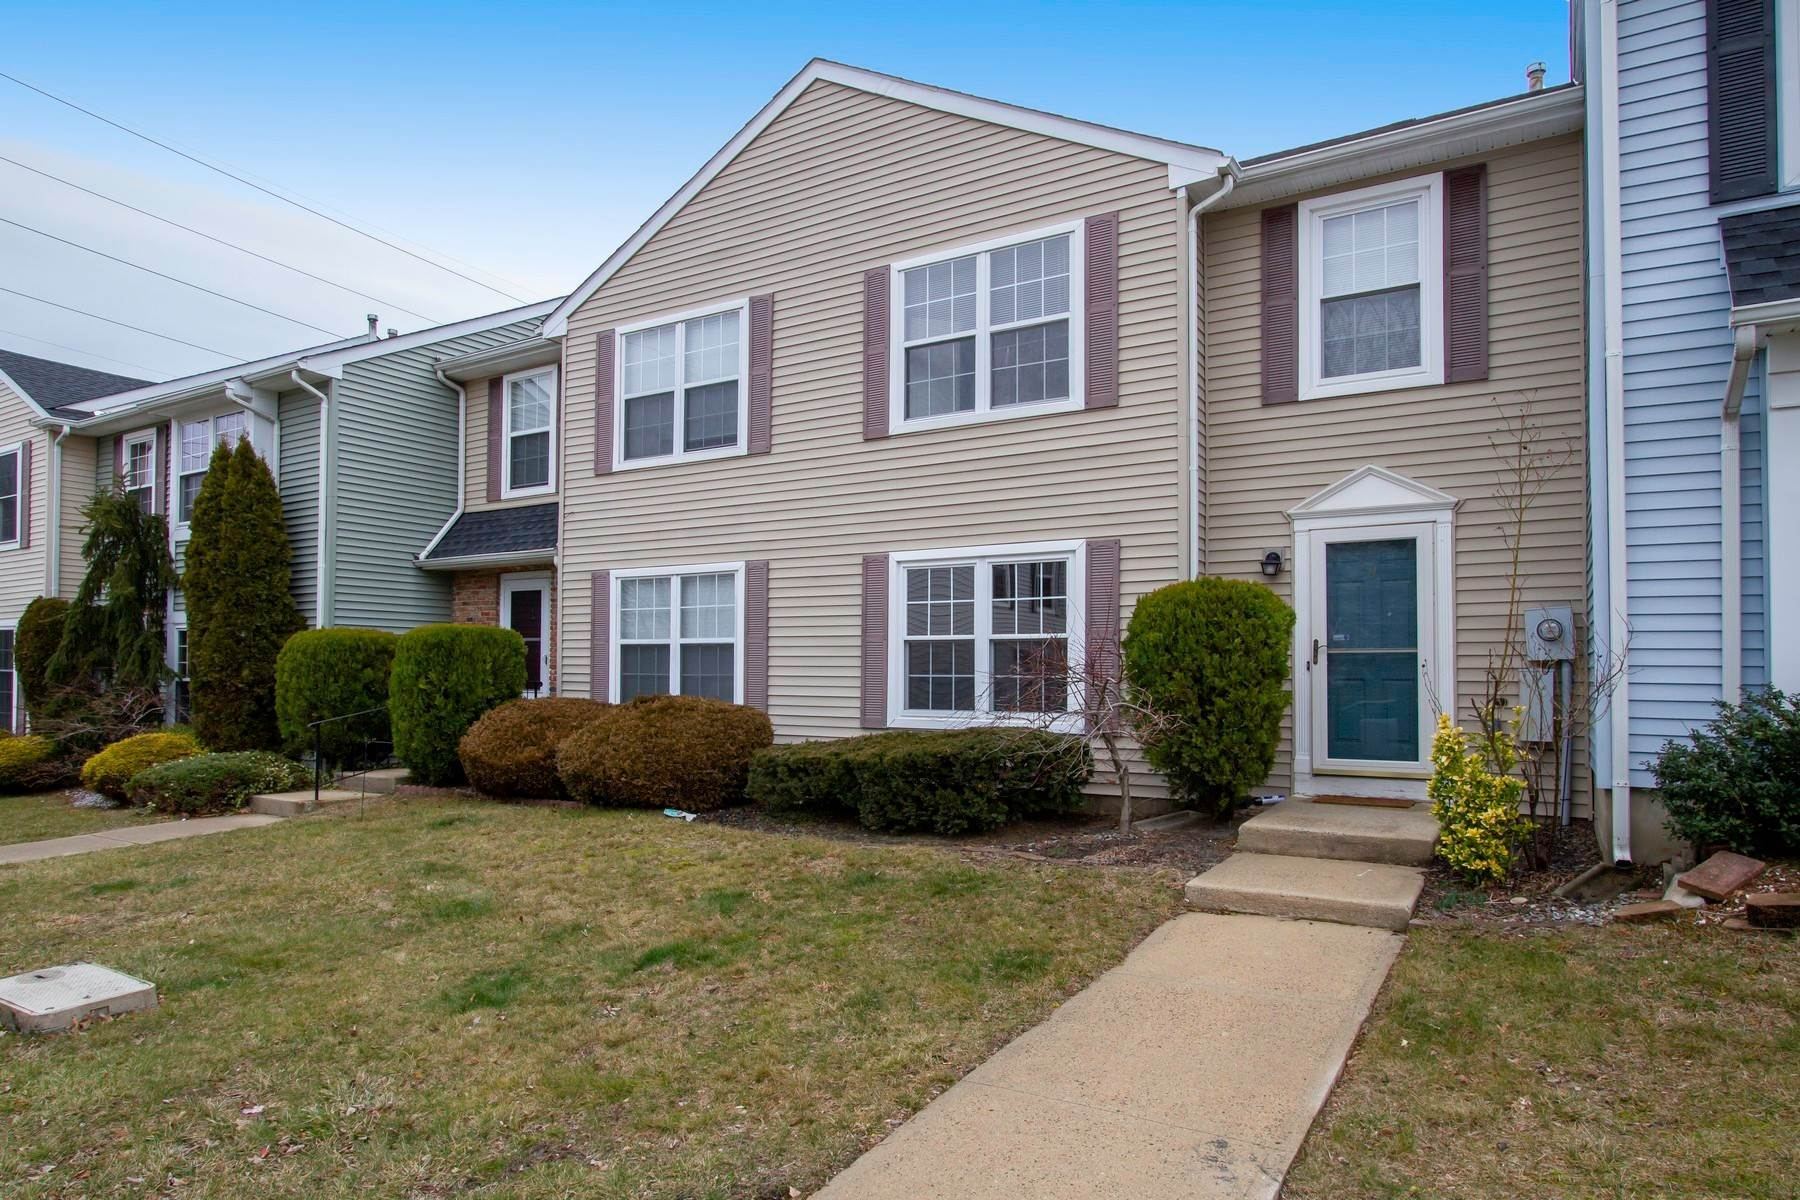 townhouses for Sale at 2 Story Townhouse 9 Rodio Court Sayreville, New Jersey 08872 United States